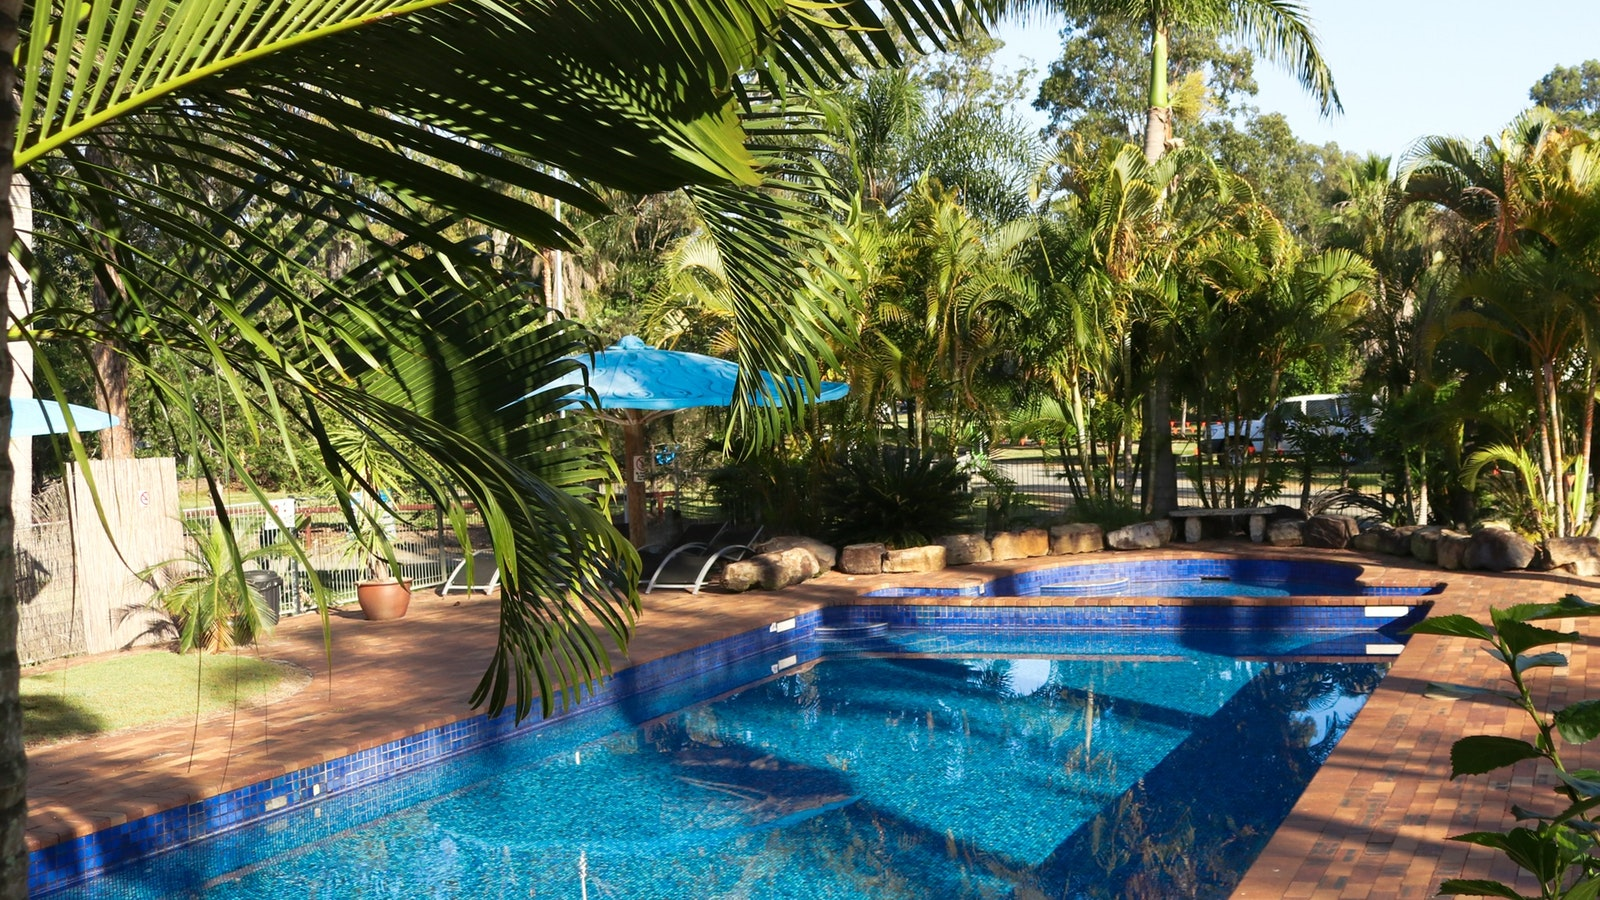 Secura Lifestyle Dreamtime Coomera Pool